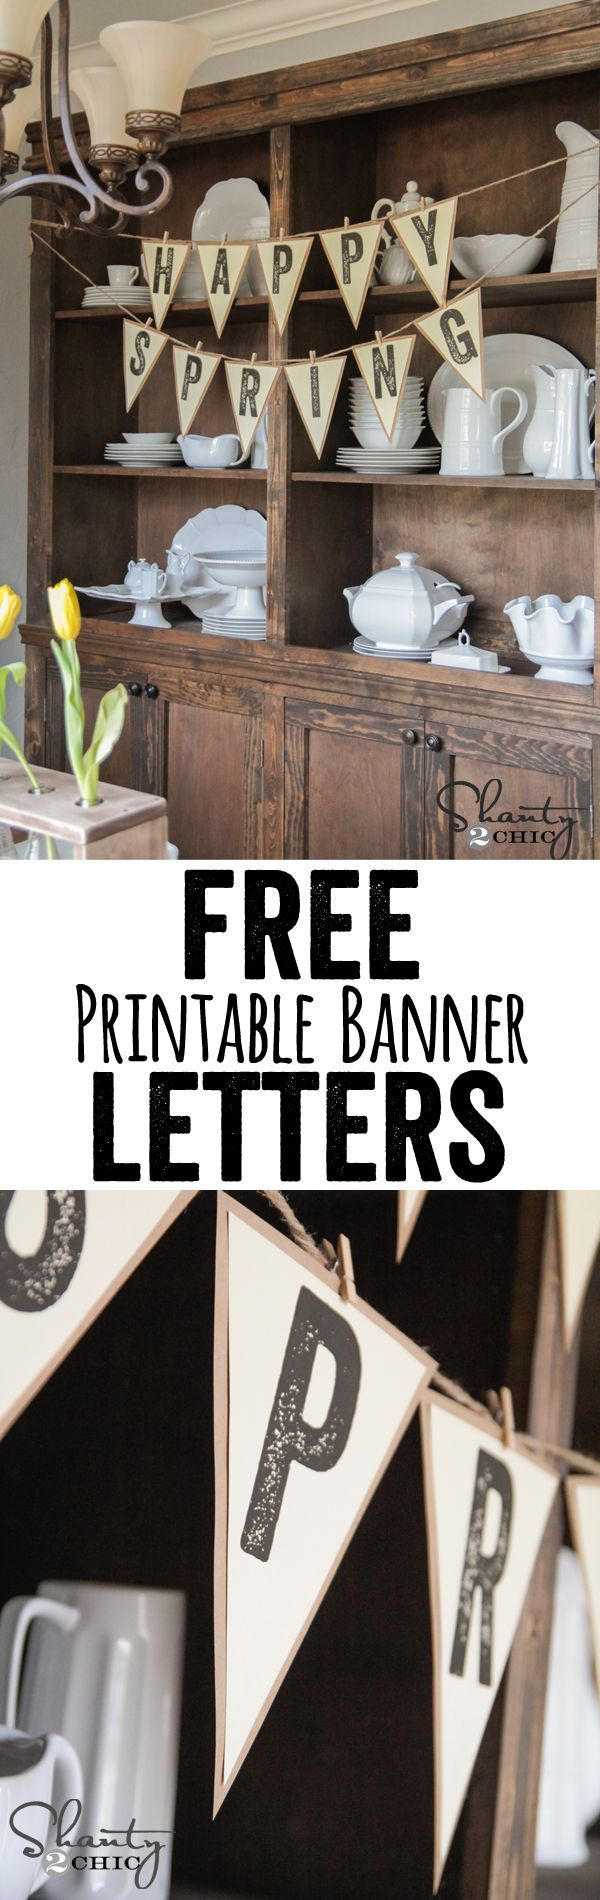 Design a banner to print - Free Printable Letter Banners At Www Shanty 2 Chic Com Print